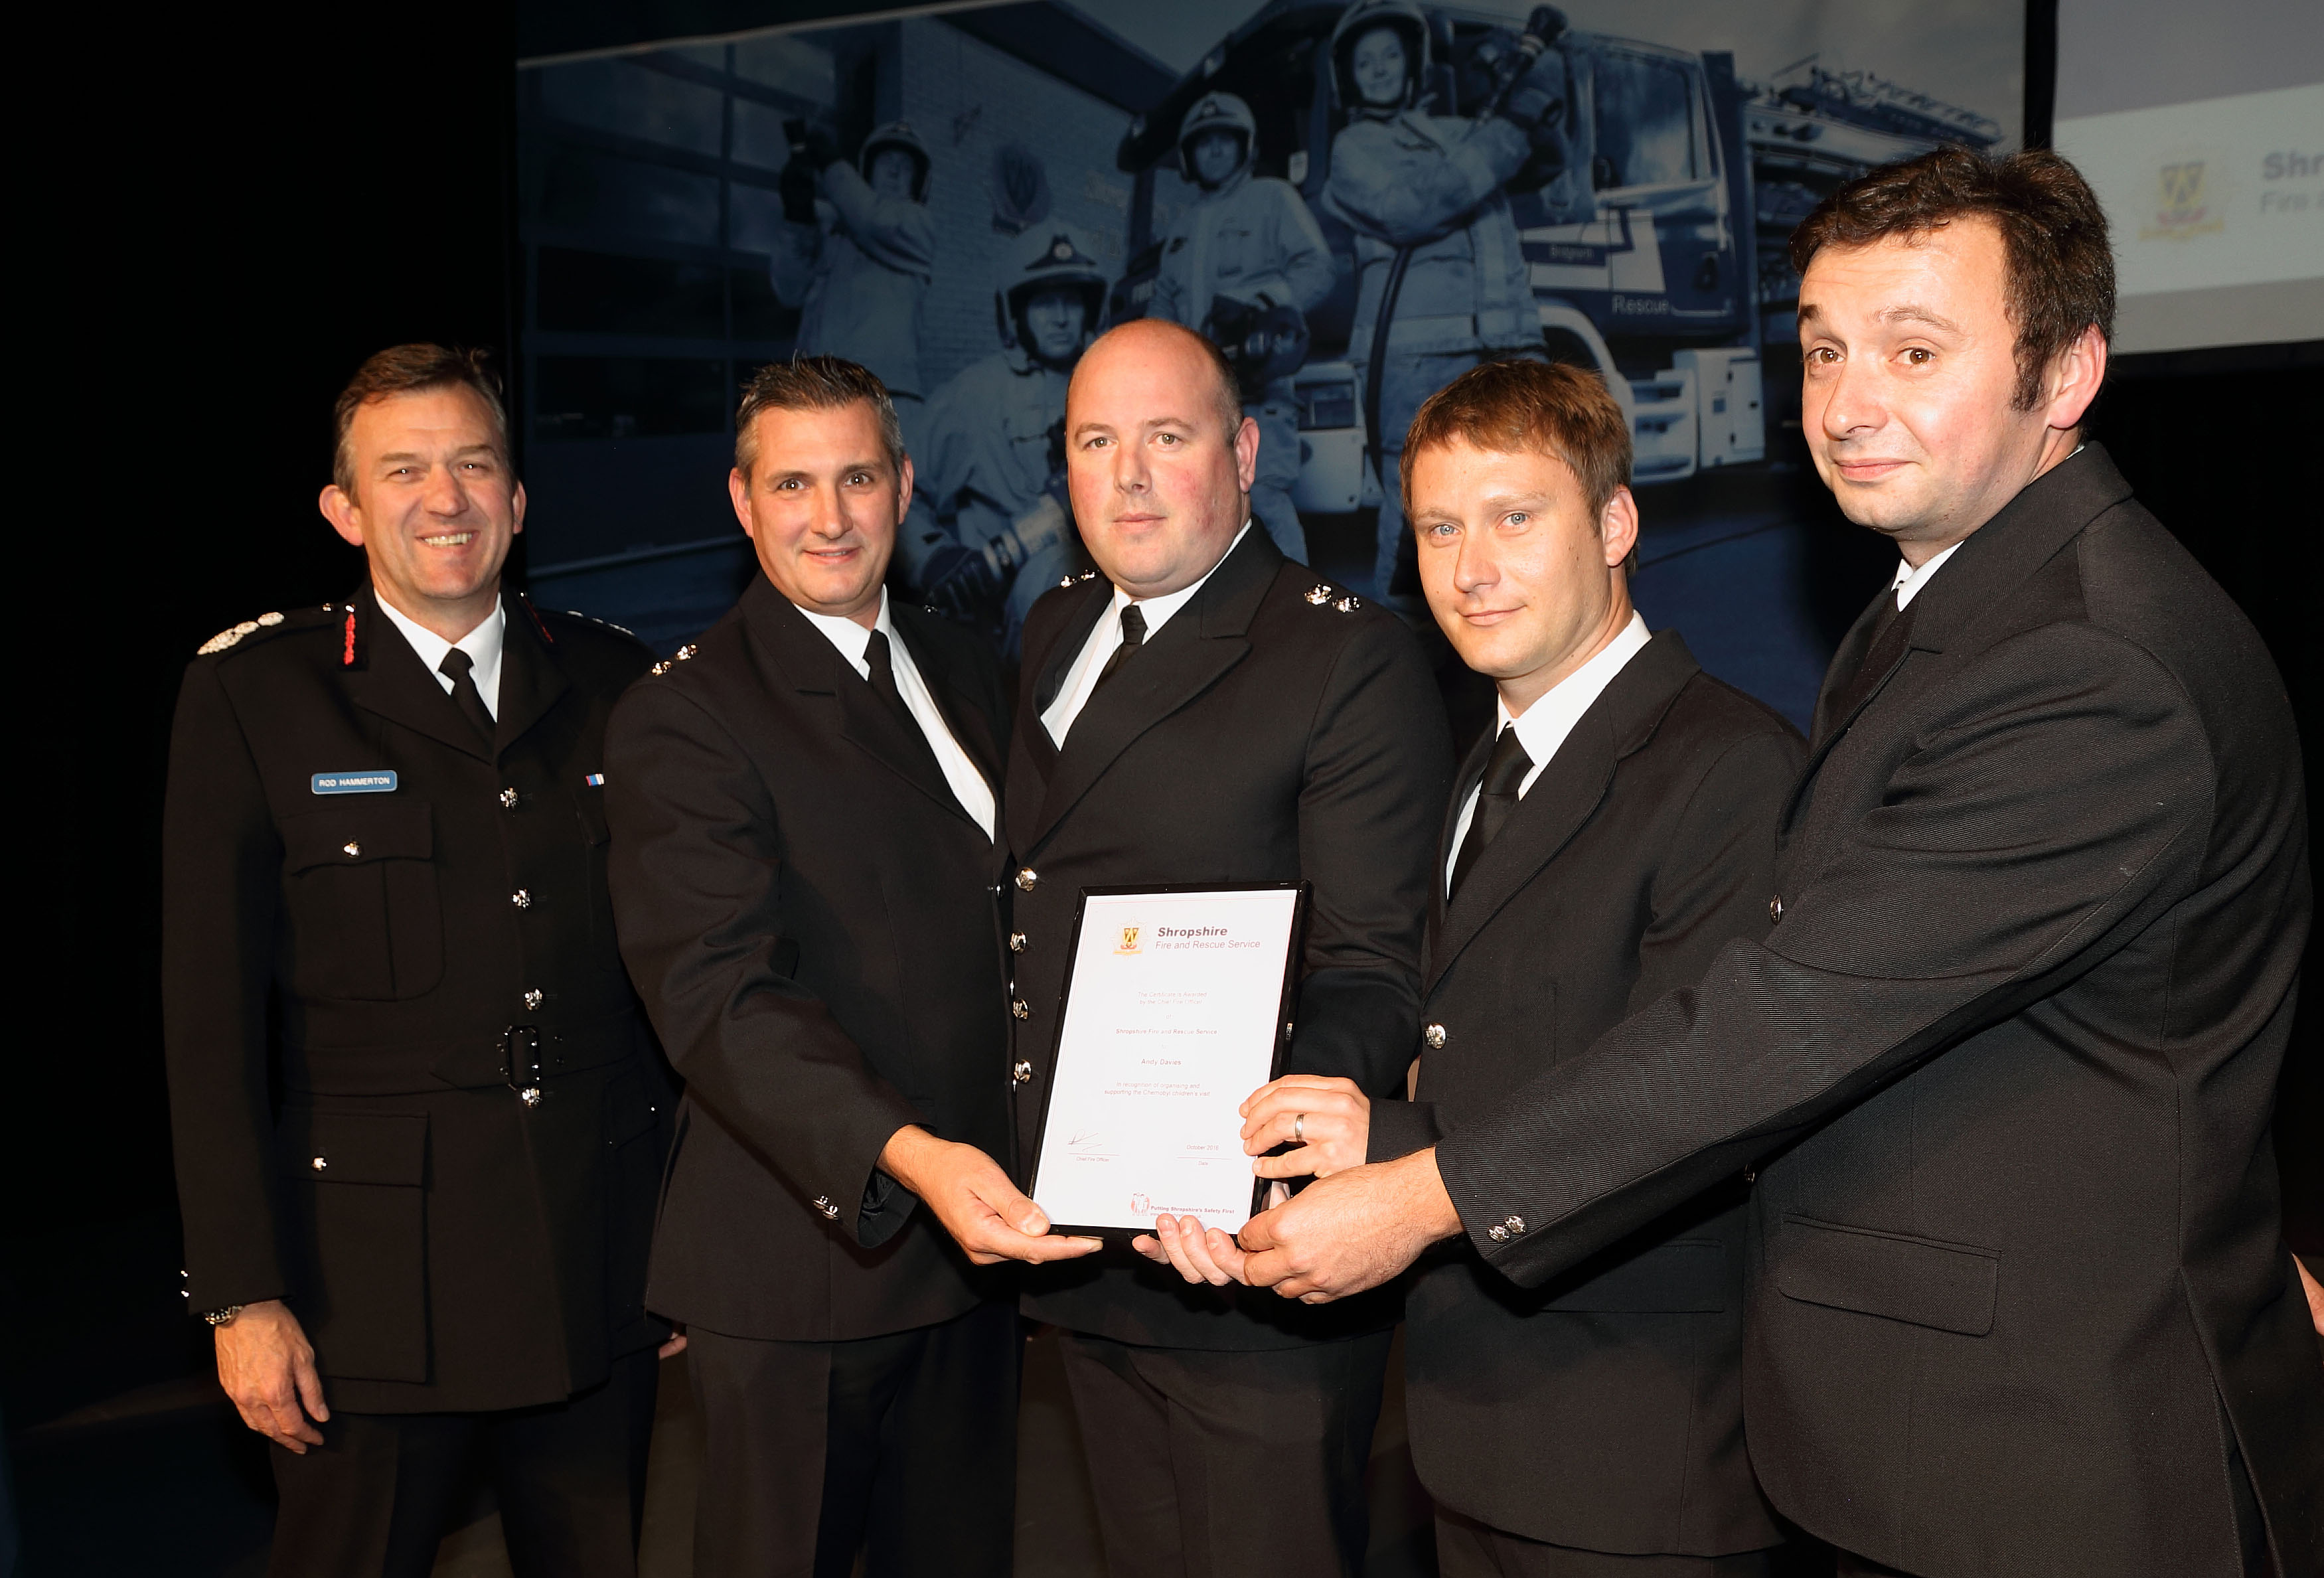 Blue Watch Shrewsbury received an award for their work with children from Chernobyl. Pictured with Chief Fire Officer Rod Hammerton are, left to right, Paul Gray, Richard Meadows, Andy Davies and Graham Carless.